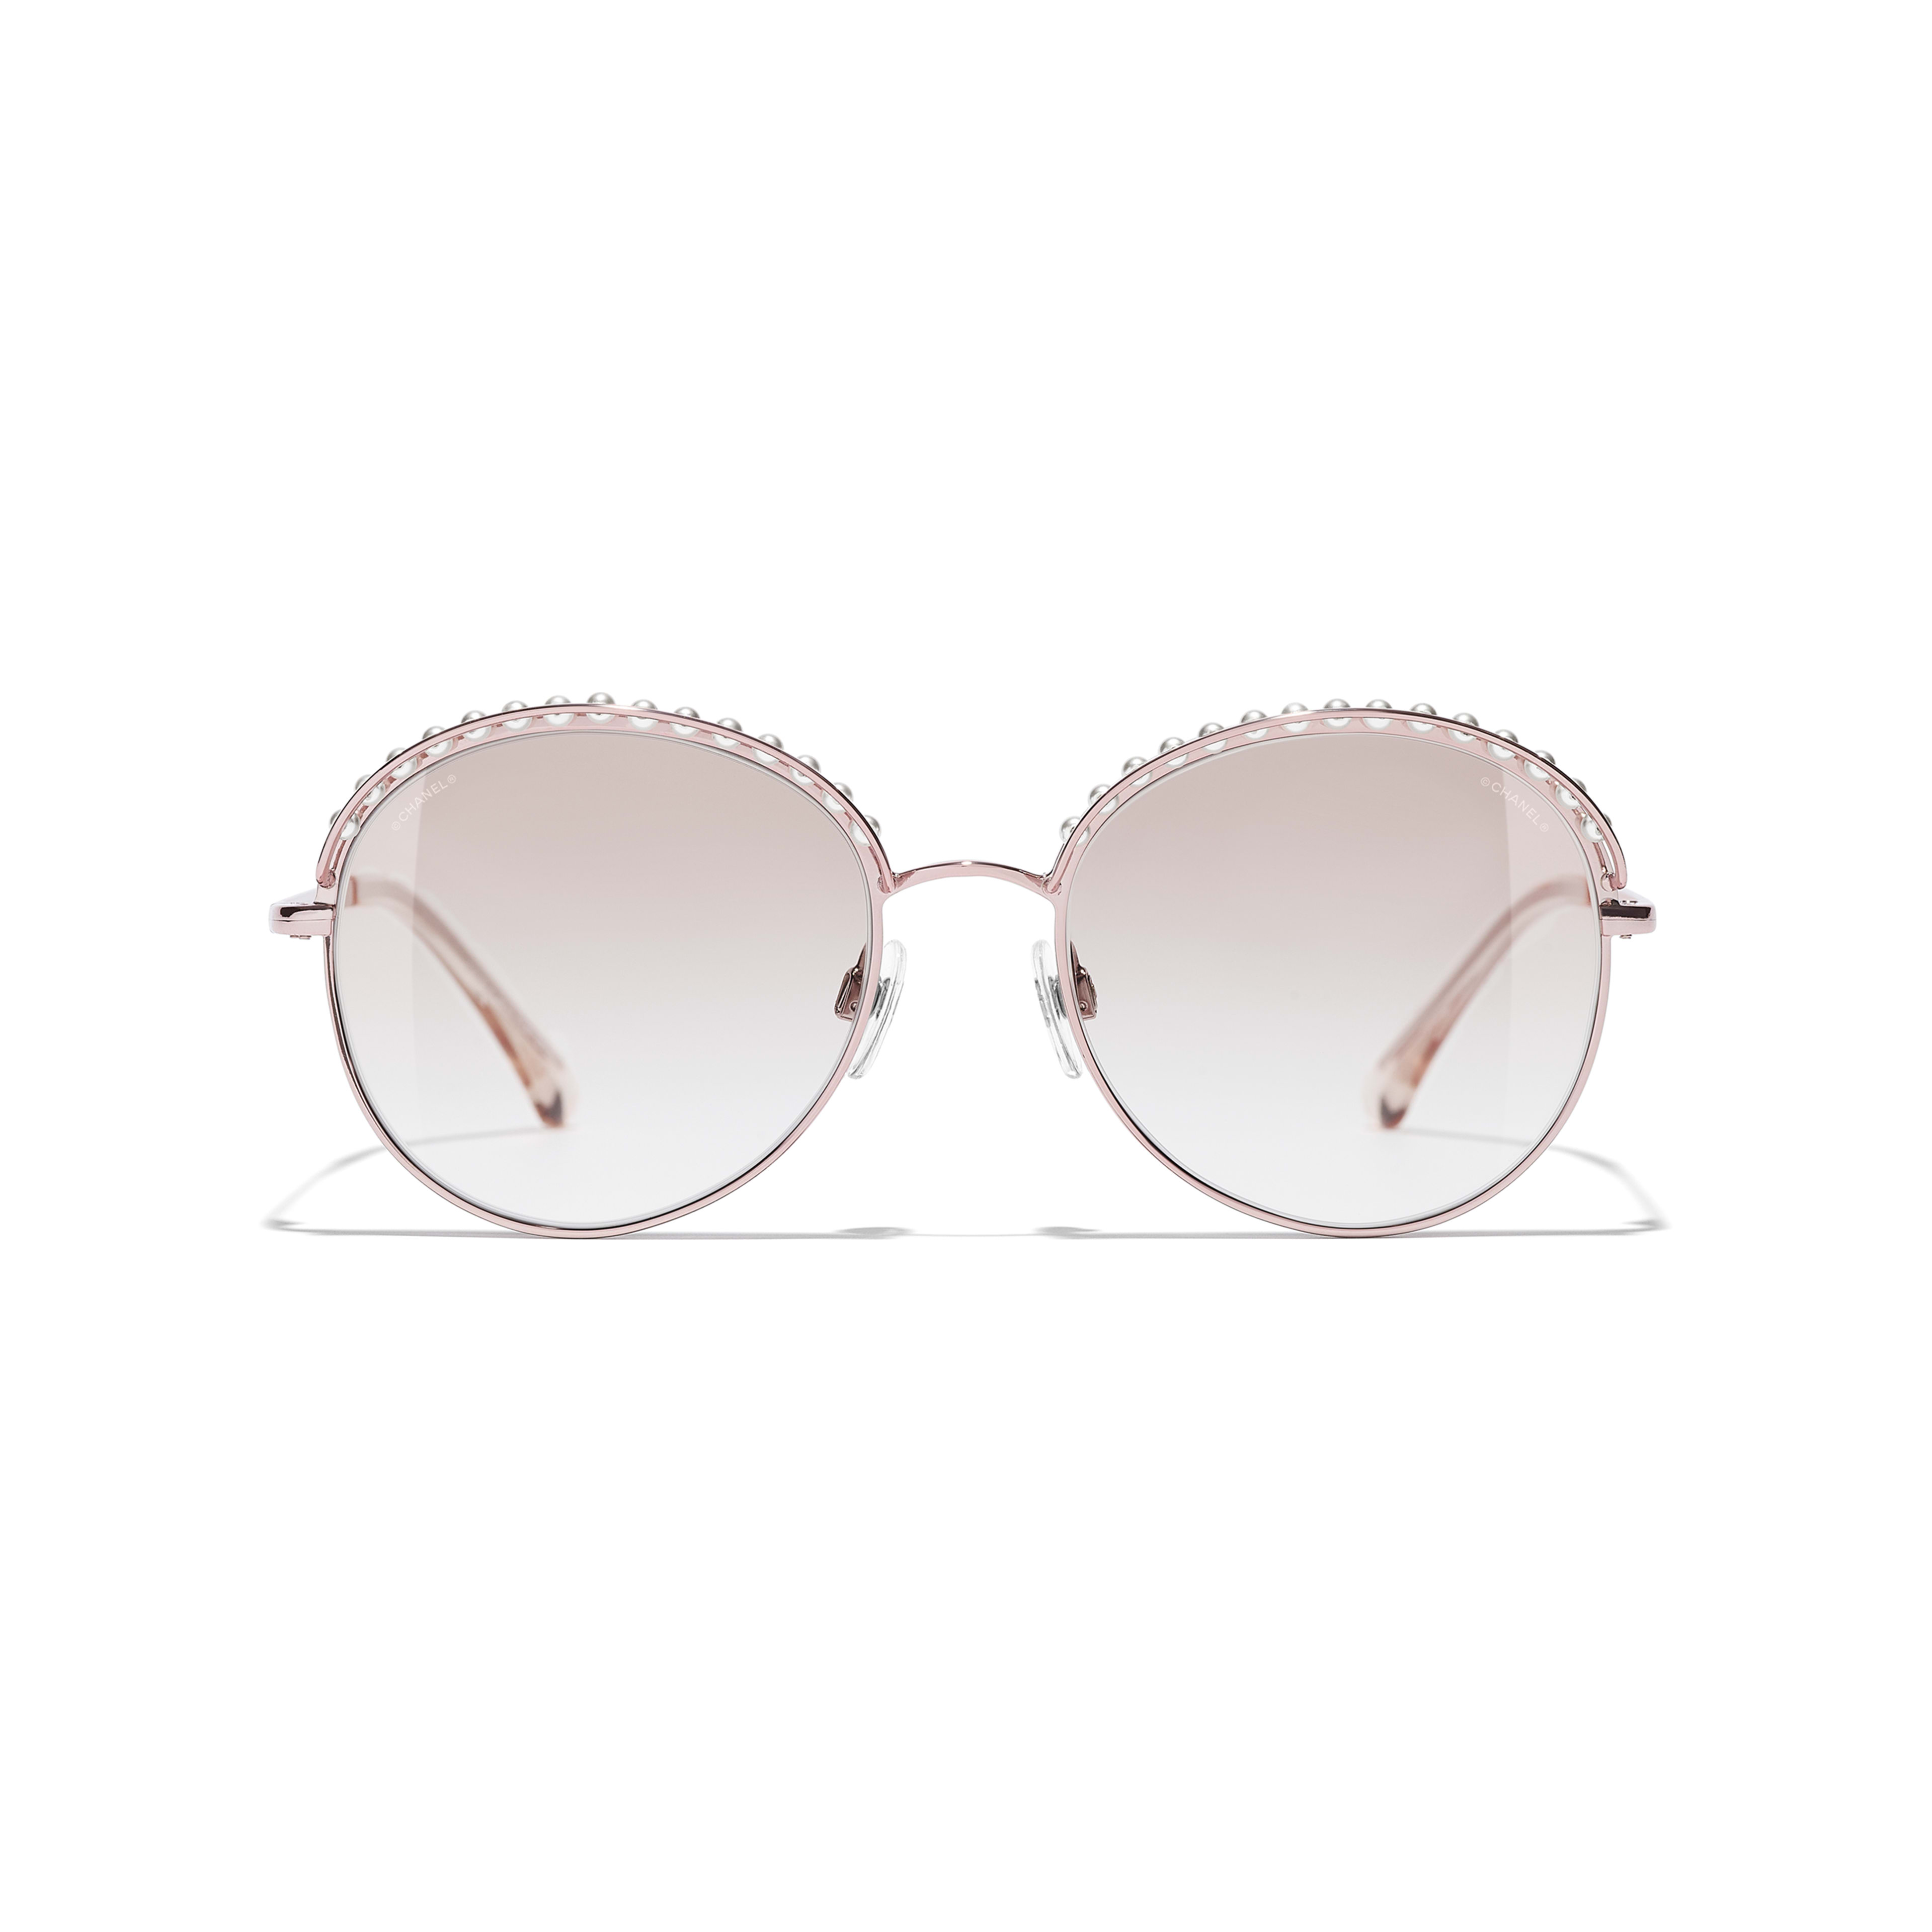 Round Sunglasses - Pinky Gold - Metal & Imitation Pearls - Alternative view - see full sized version